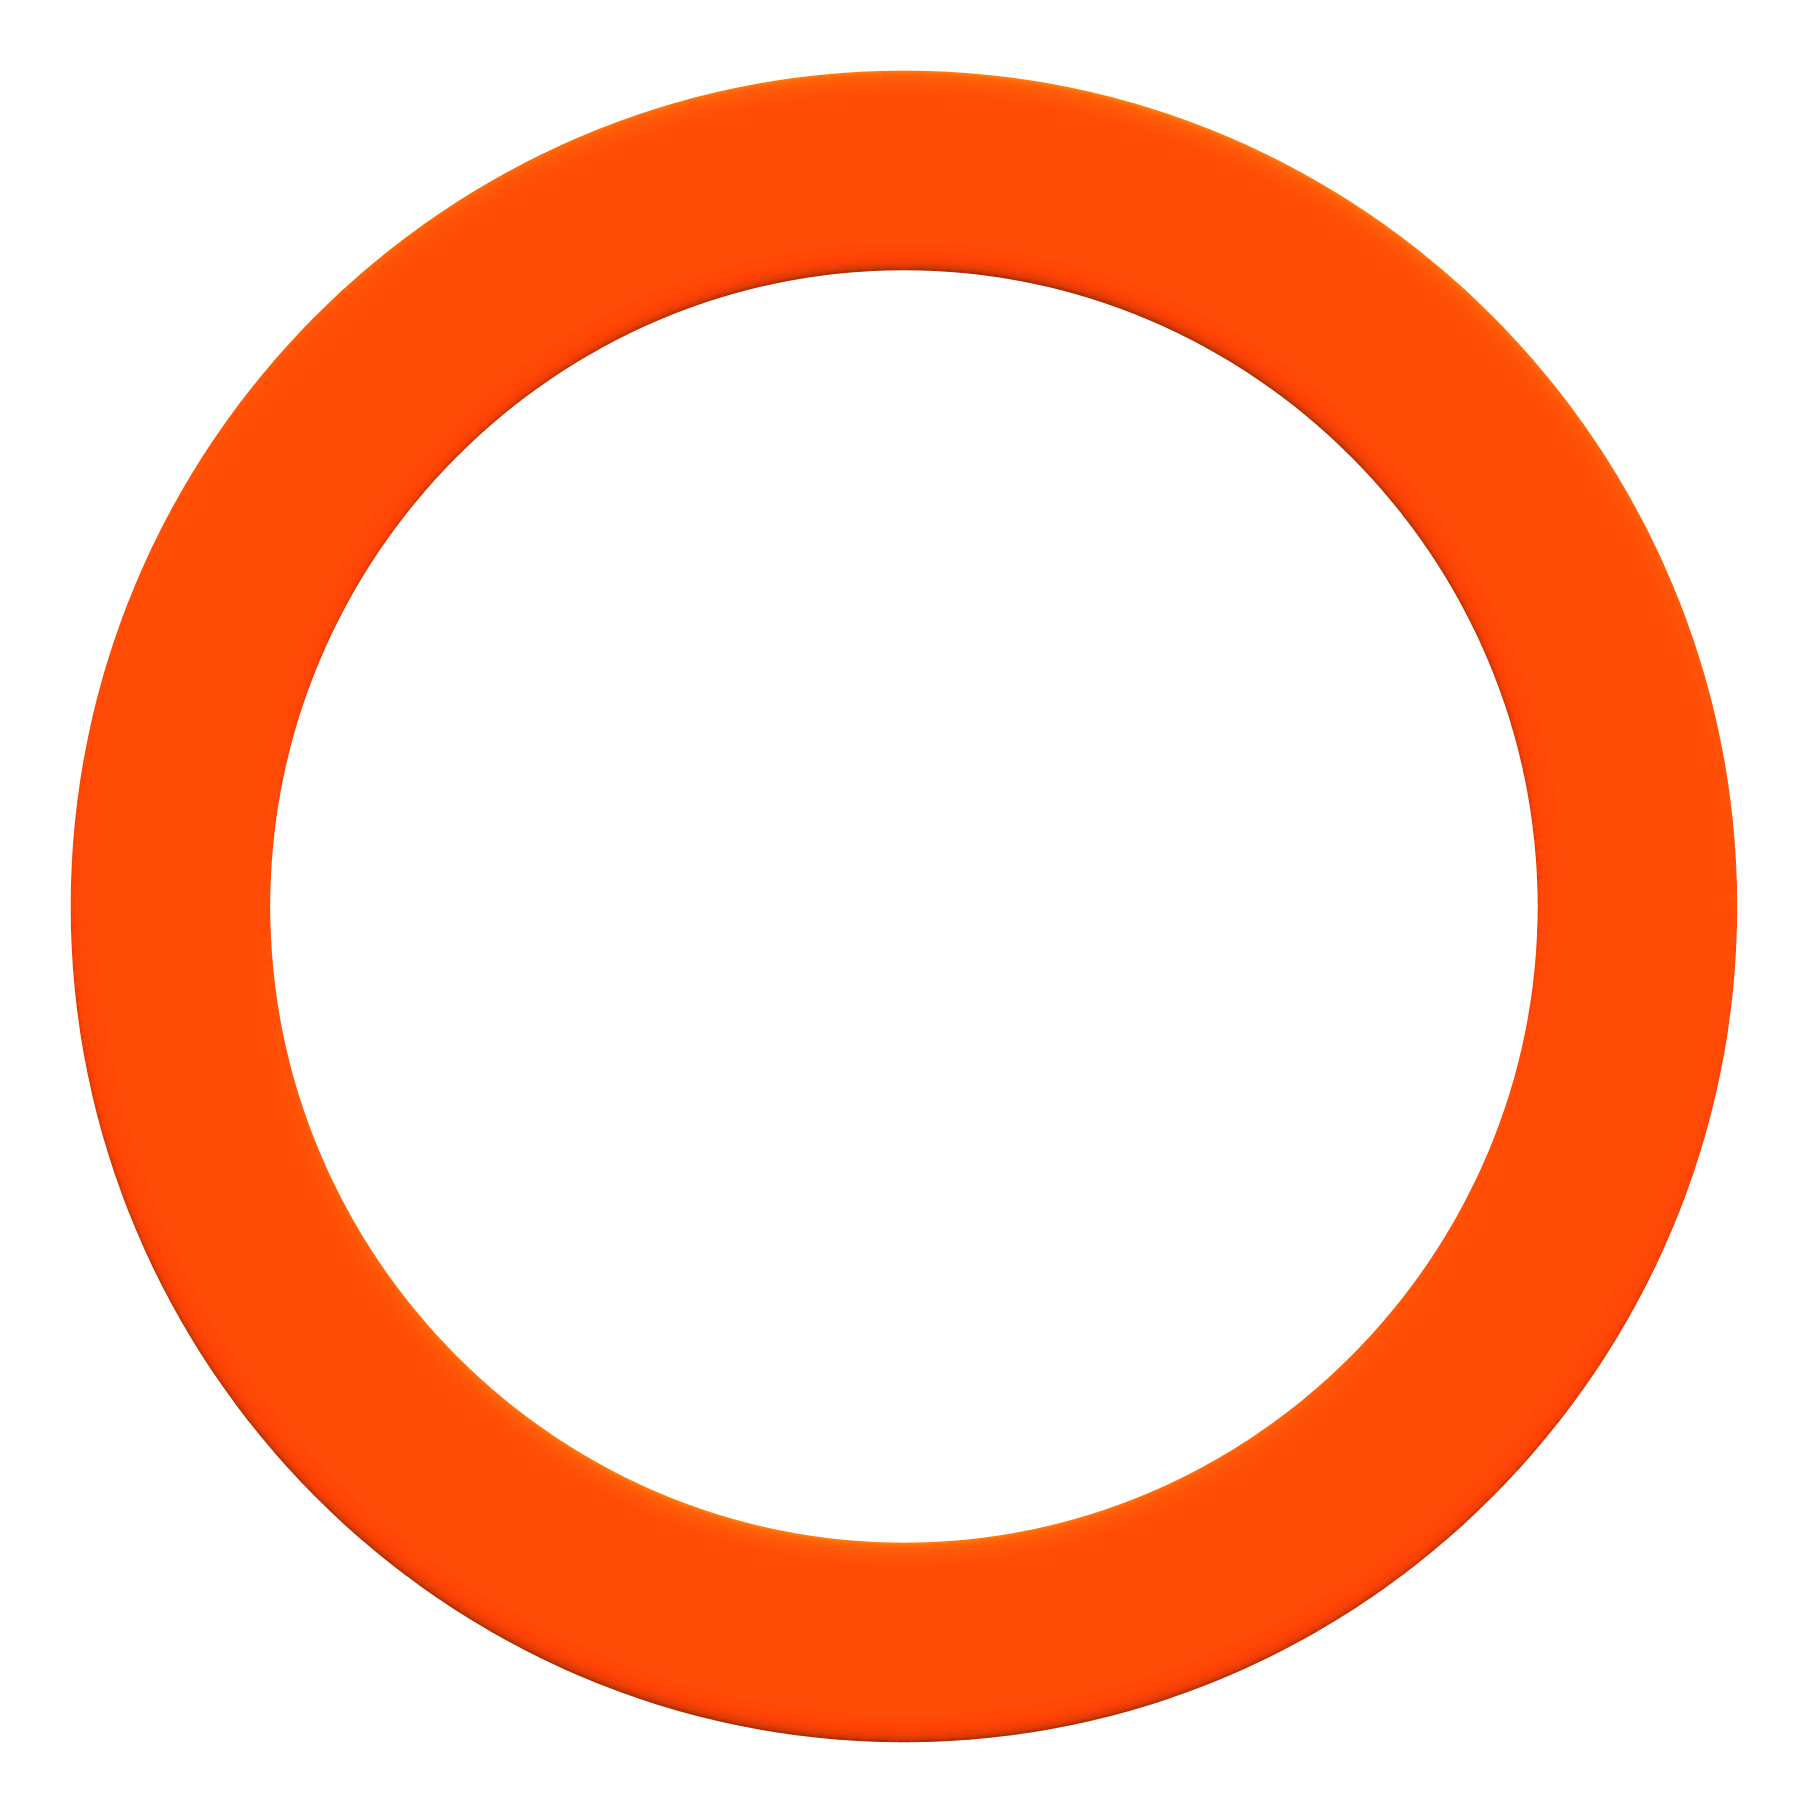 File:Lol circle.png